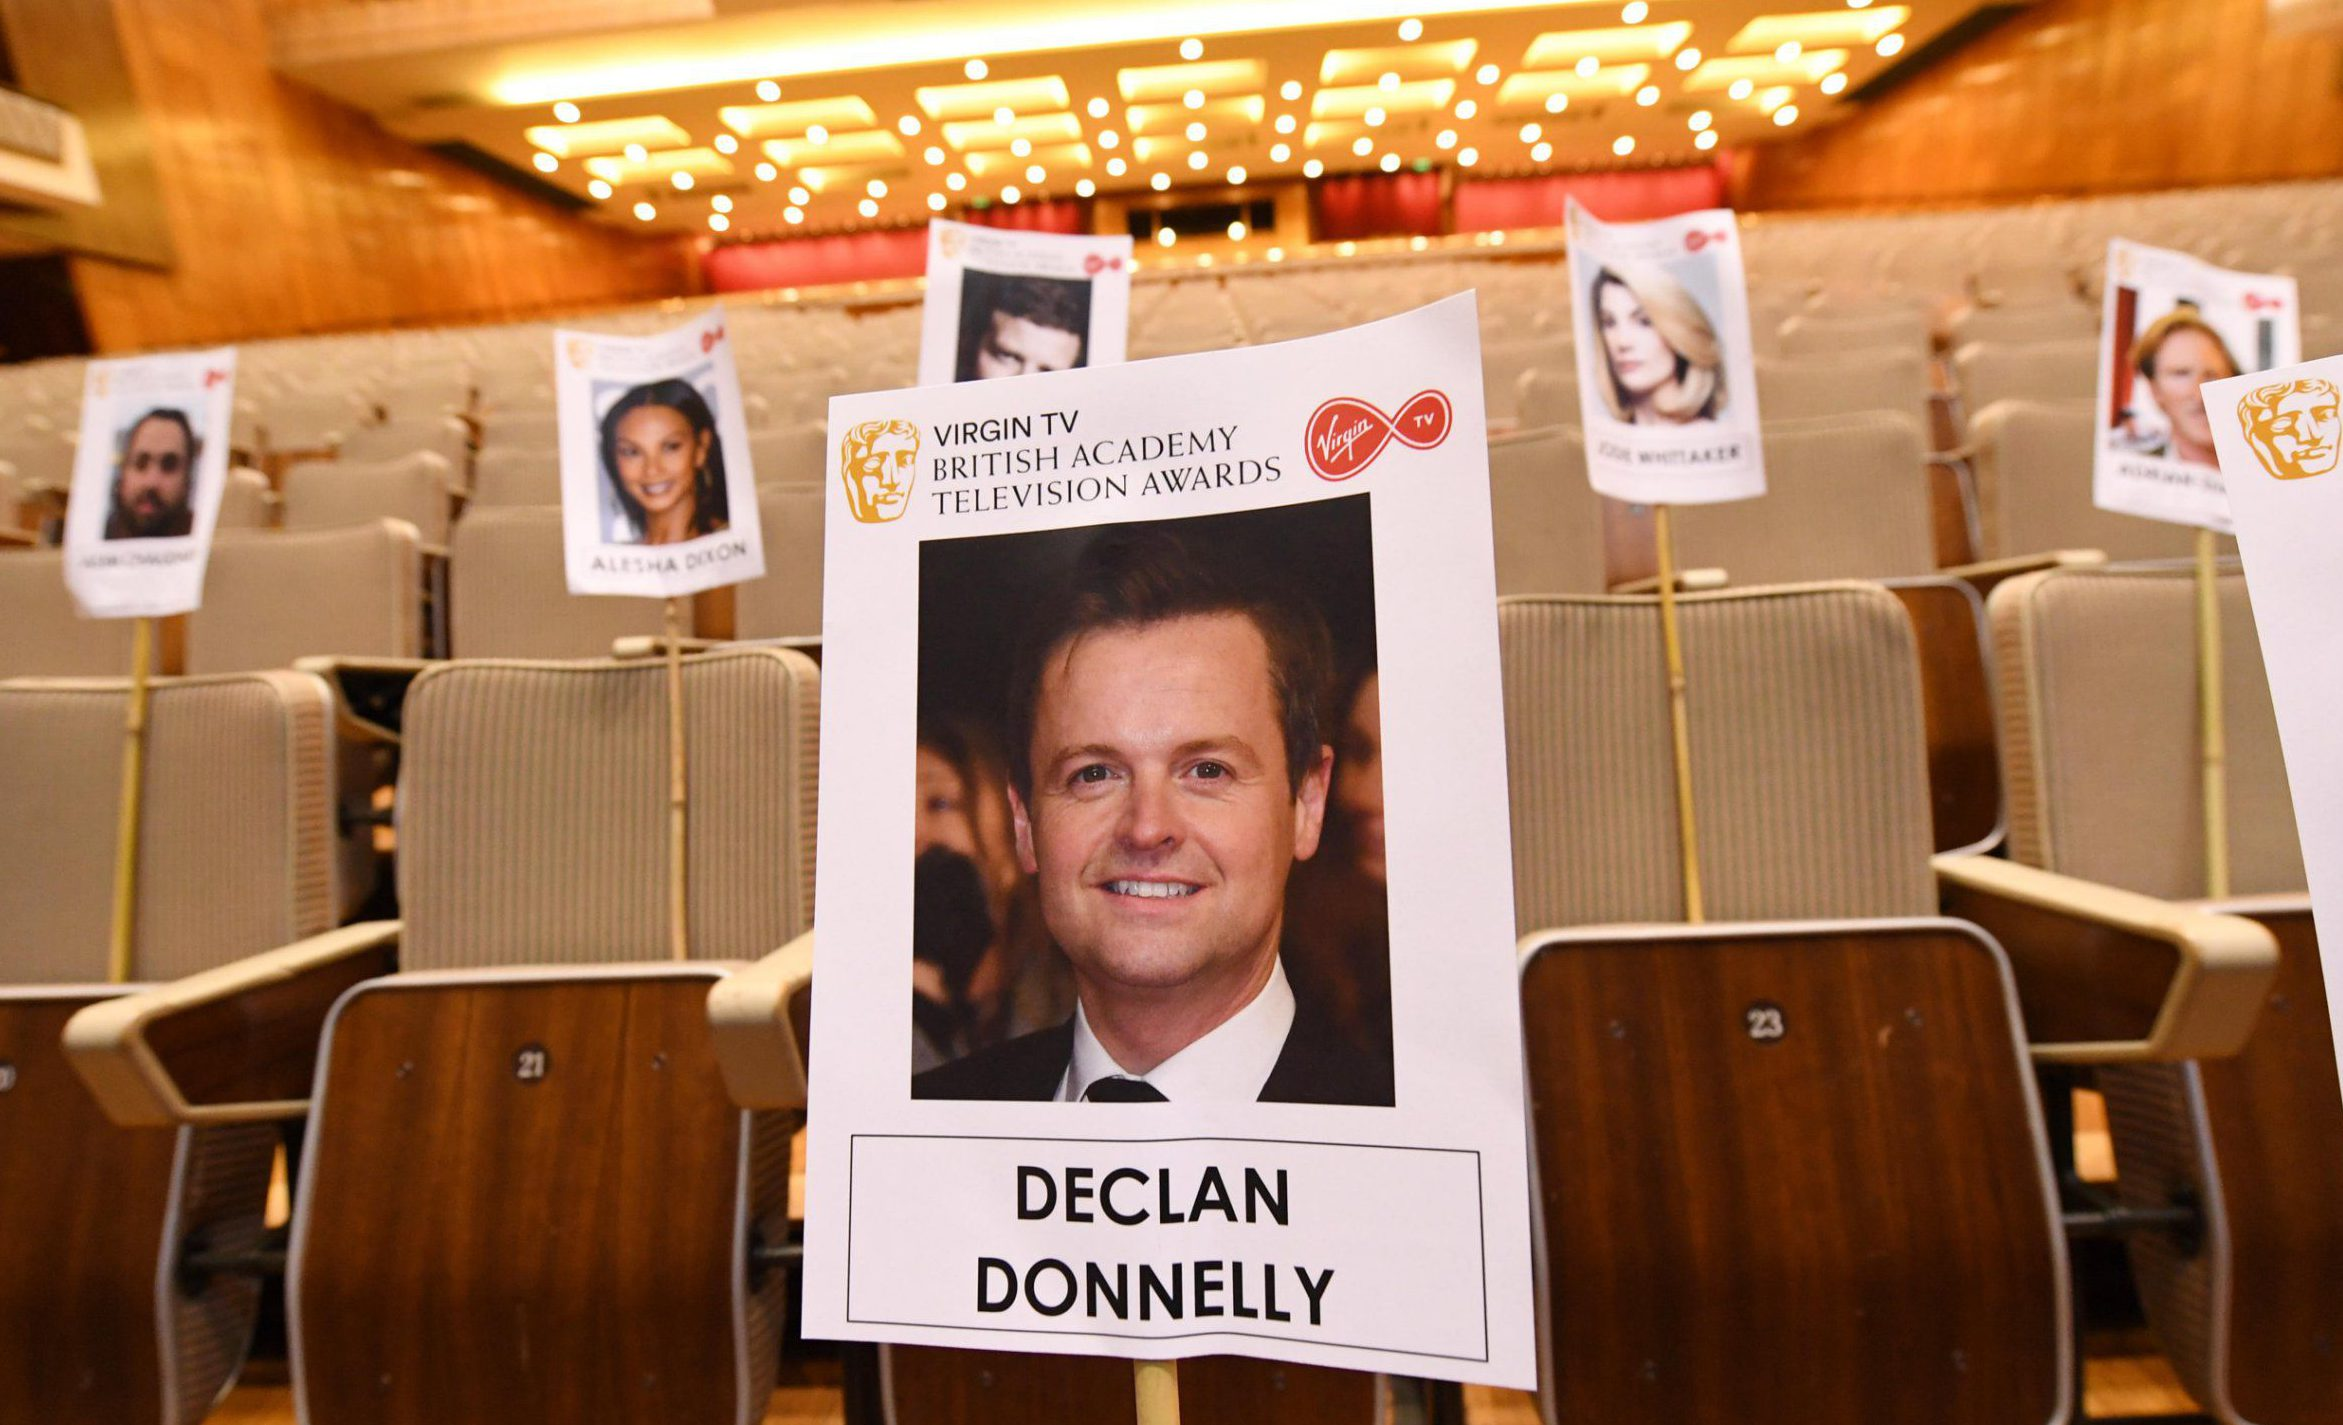 Dec Donnelly to sit alone at Bafta TV Awards as Ant McPartlin leaves rehab